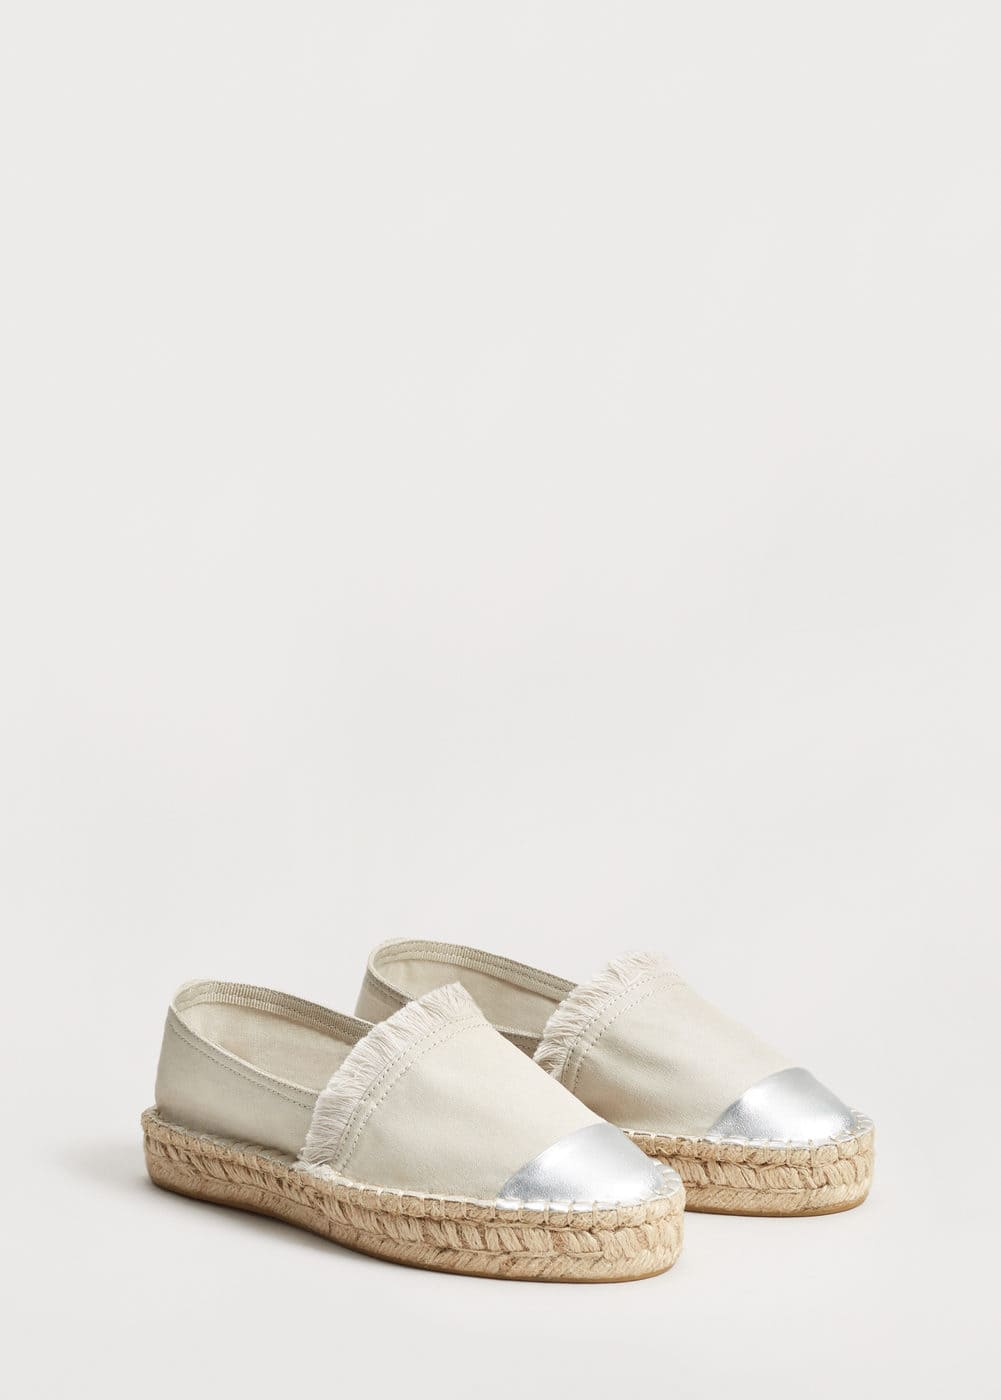 Bicolor cotton espadrilles | VIOLETA BY MANGO